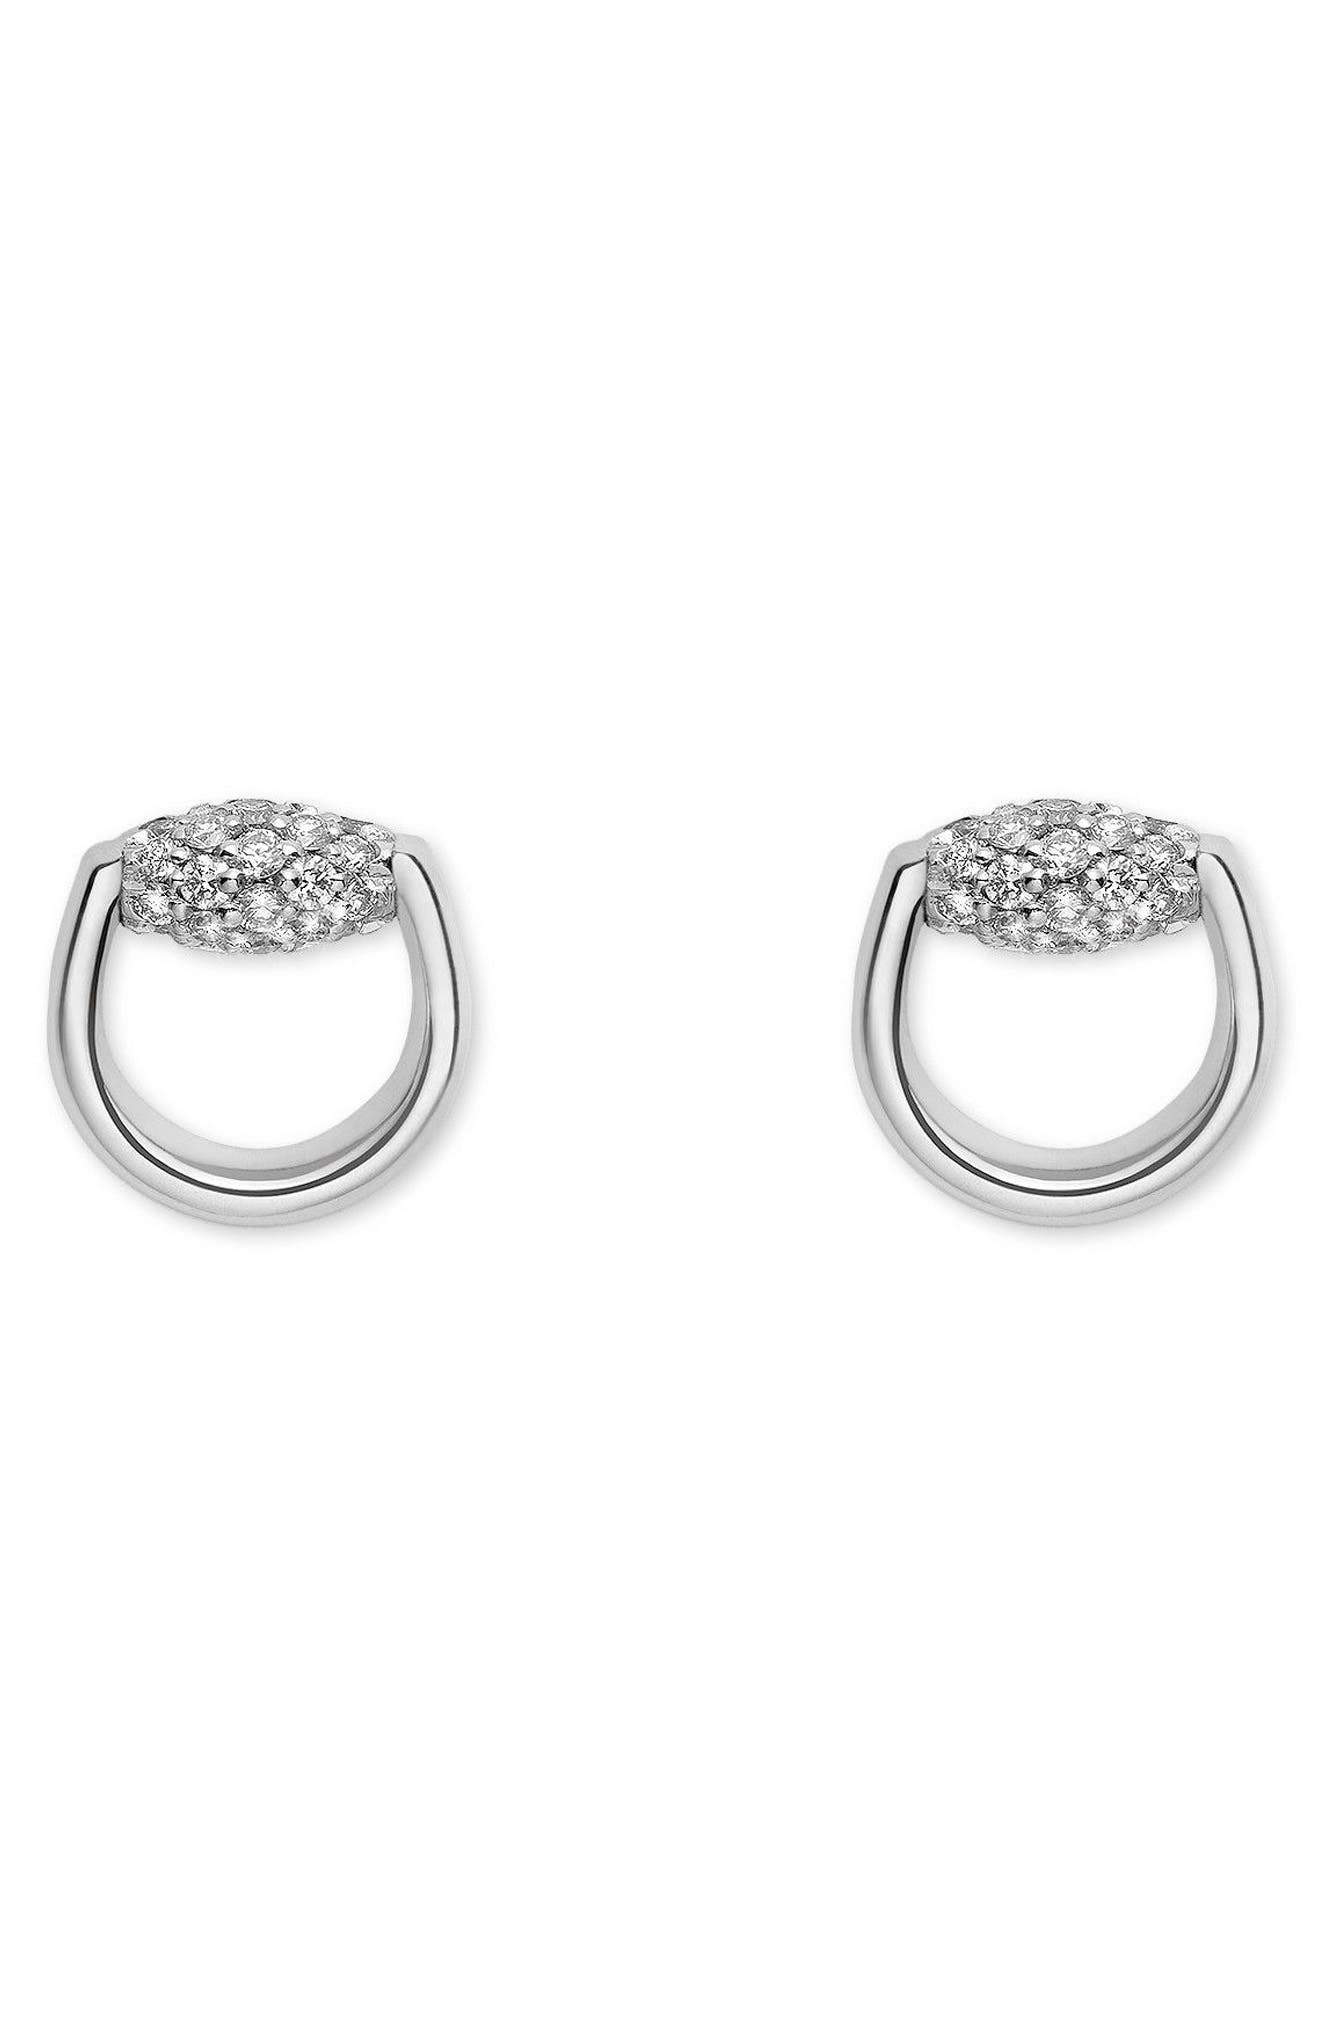 Main Image - Gucci Horsebit Diamond Stud Earrings